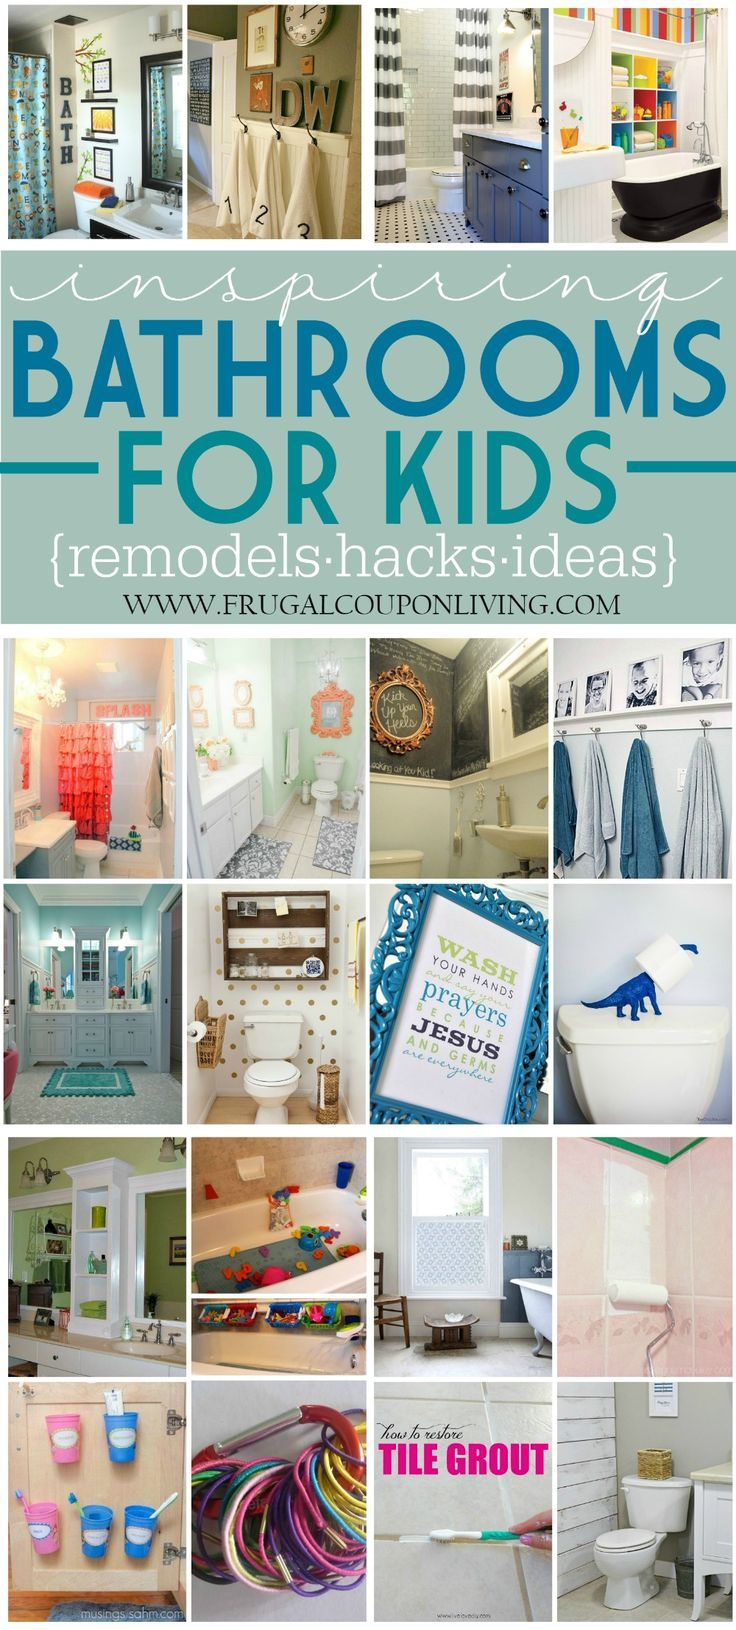 Safari bathroom decor for kids - Best 25 Baby Bathroom Ideas On Pinterest Canvas Pictures Kid Bathrooms And Baby Bathing